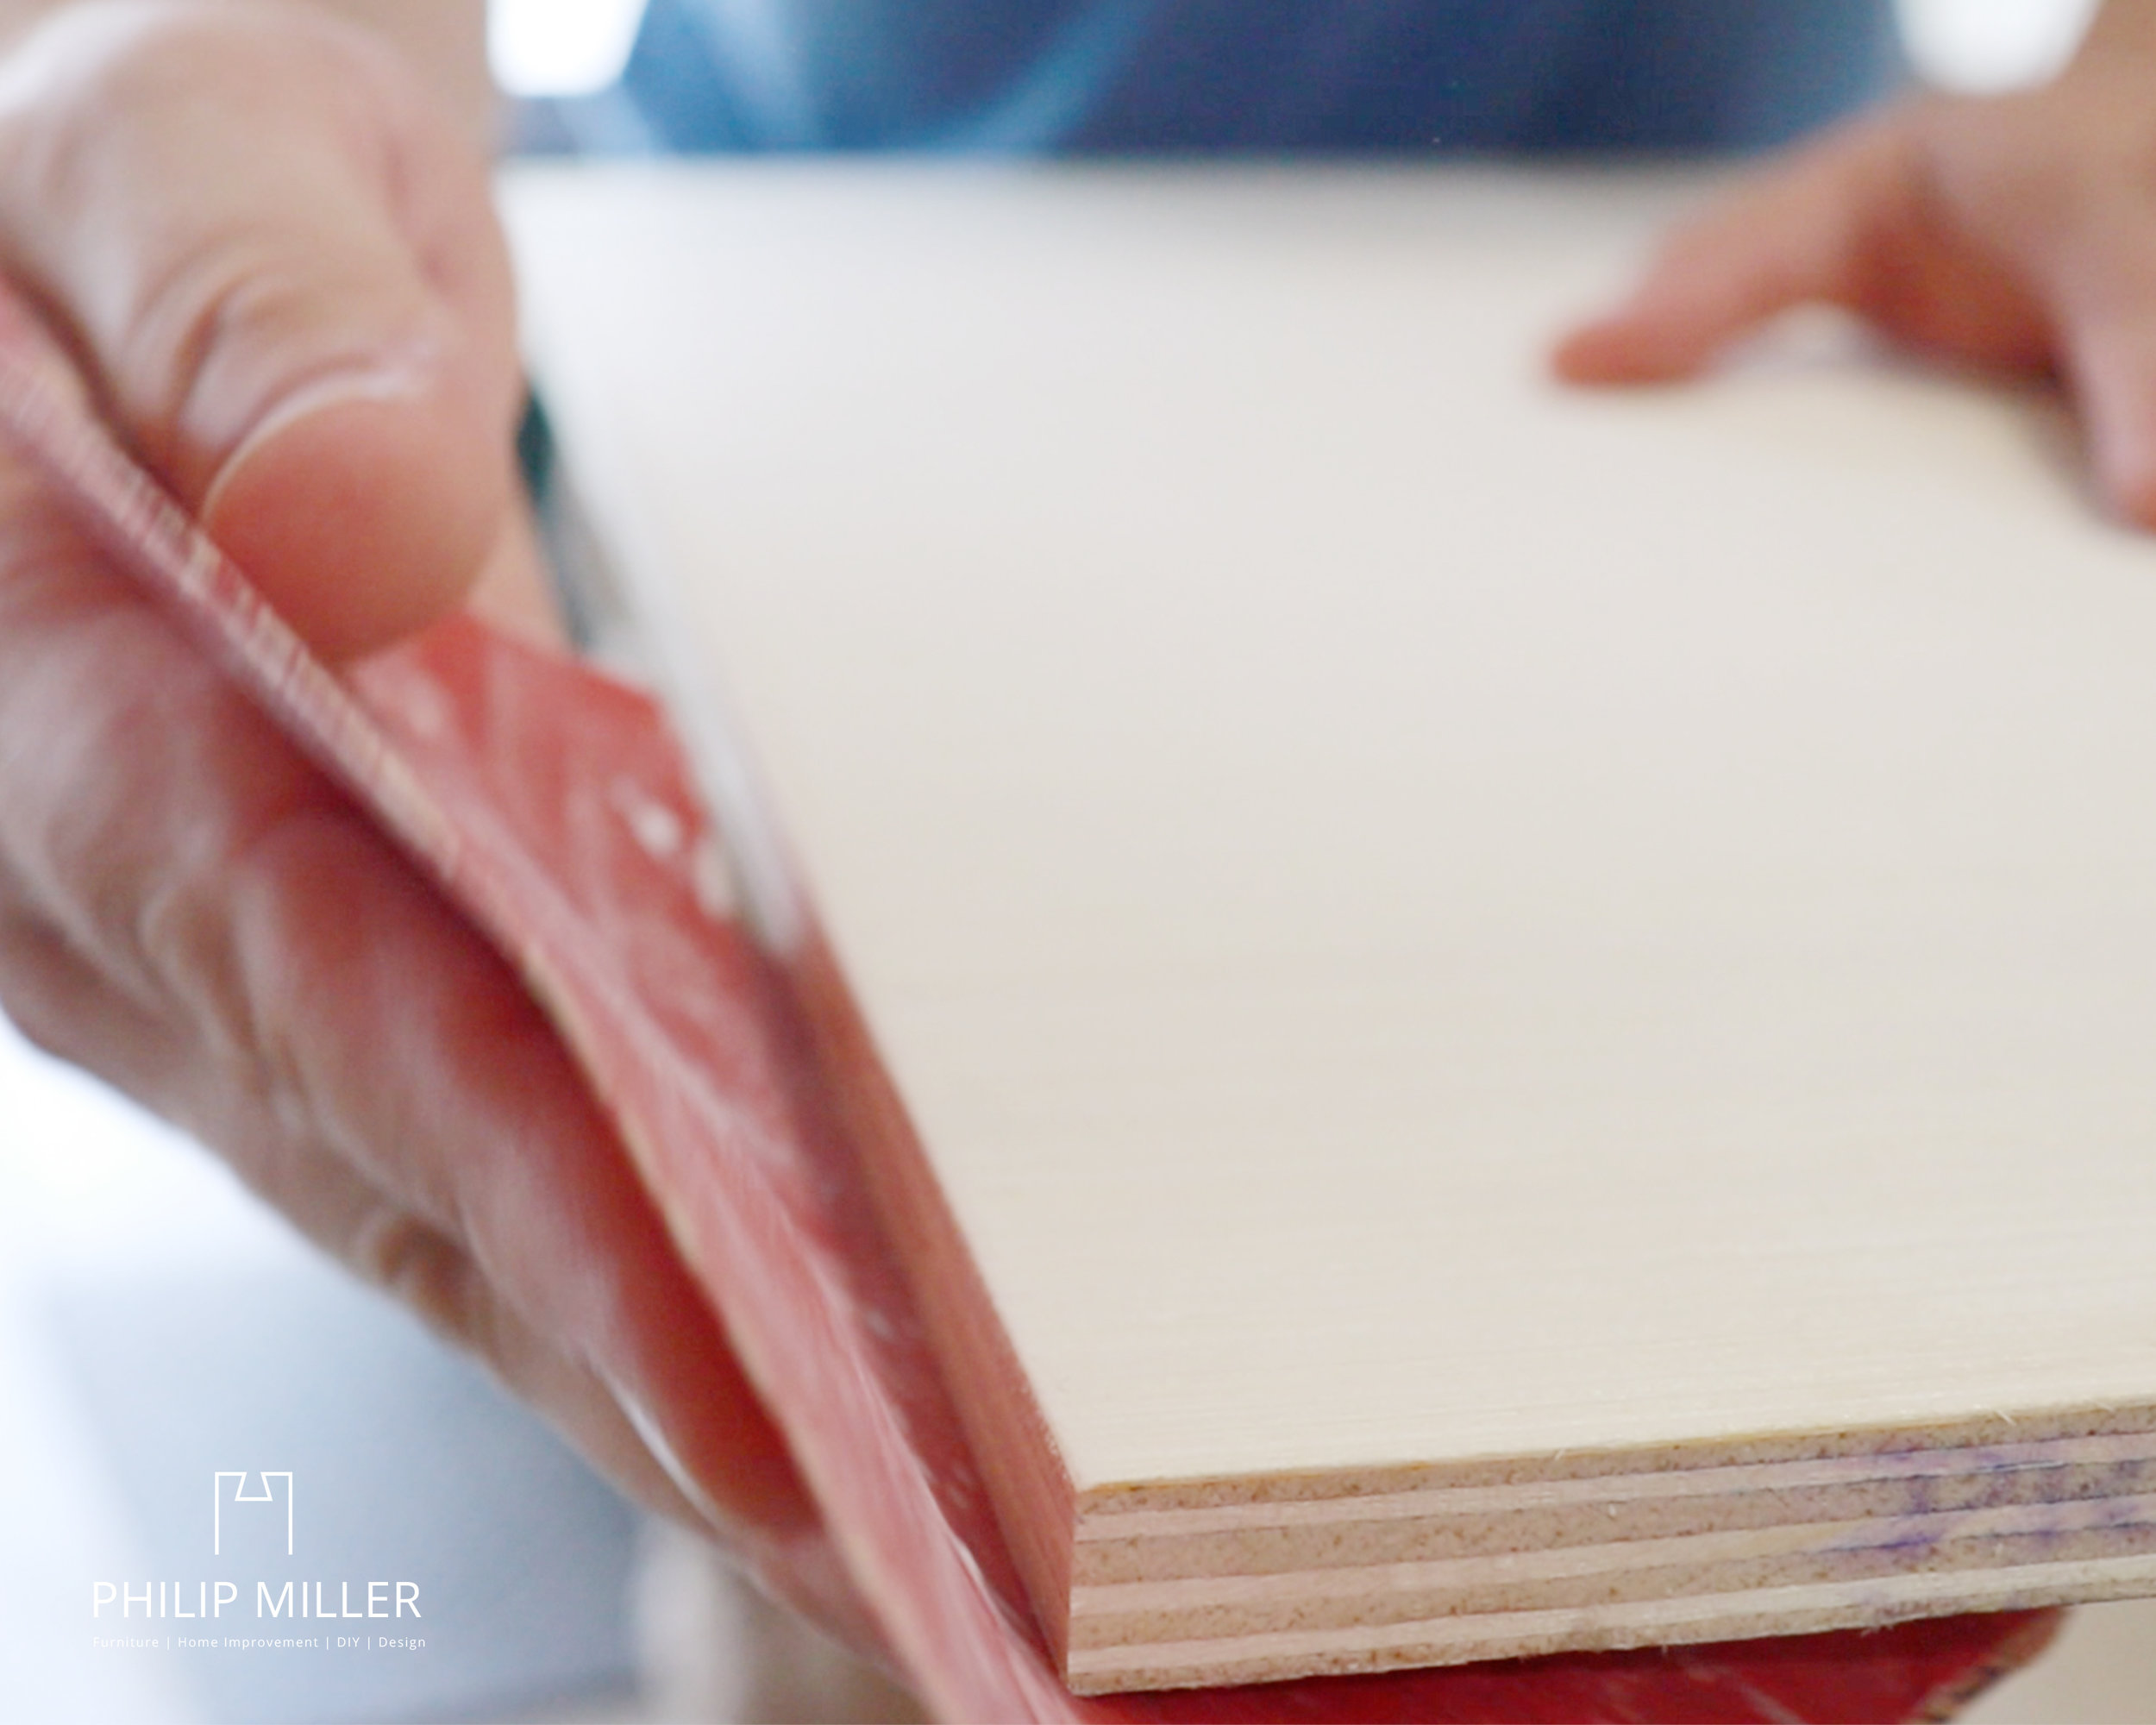 sanding and breaking the edges of the half inch plywood with sandpaper